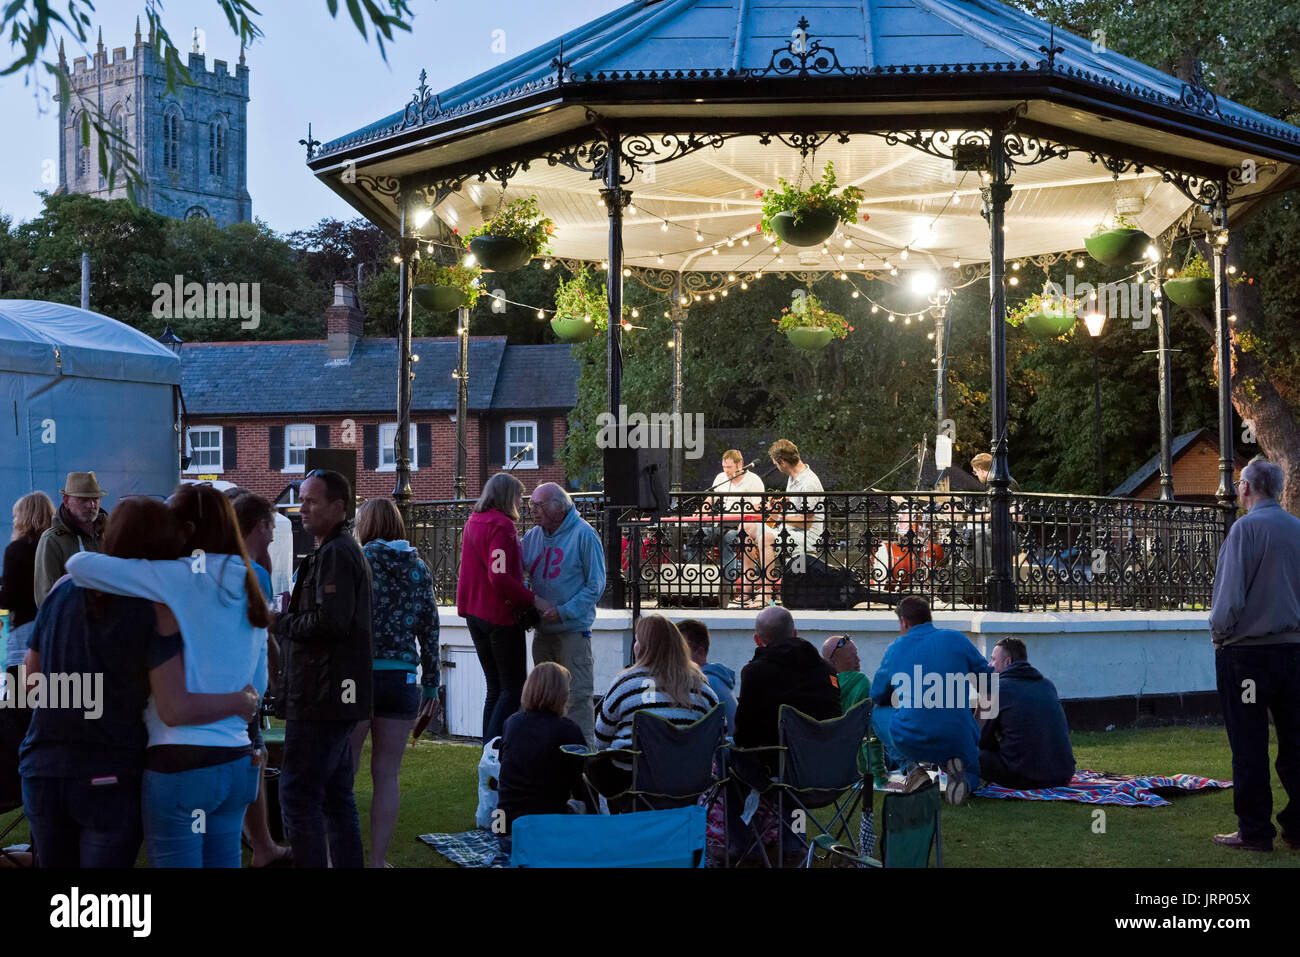 Christchurch, UK. 05th Aug, 2017. Large crowds attend the 23rd annual free jazz festival. The Daryl Ford Organ Trio perform in the band stand at sunset. Credit: Roger Allen Photography/Alamy Live News - Stock Image